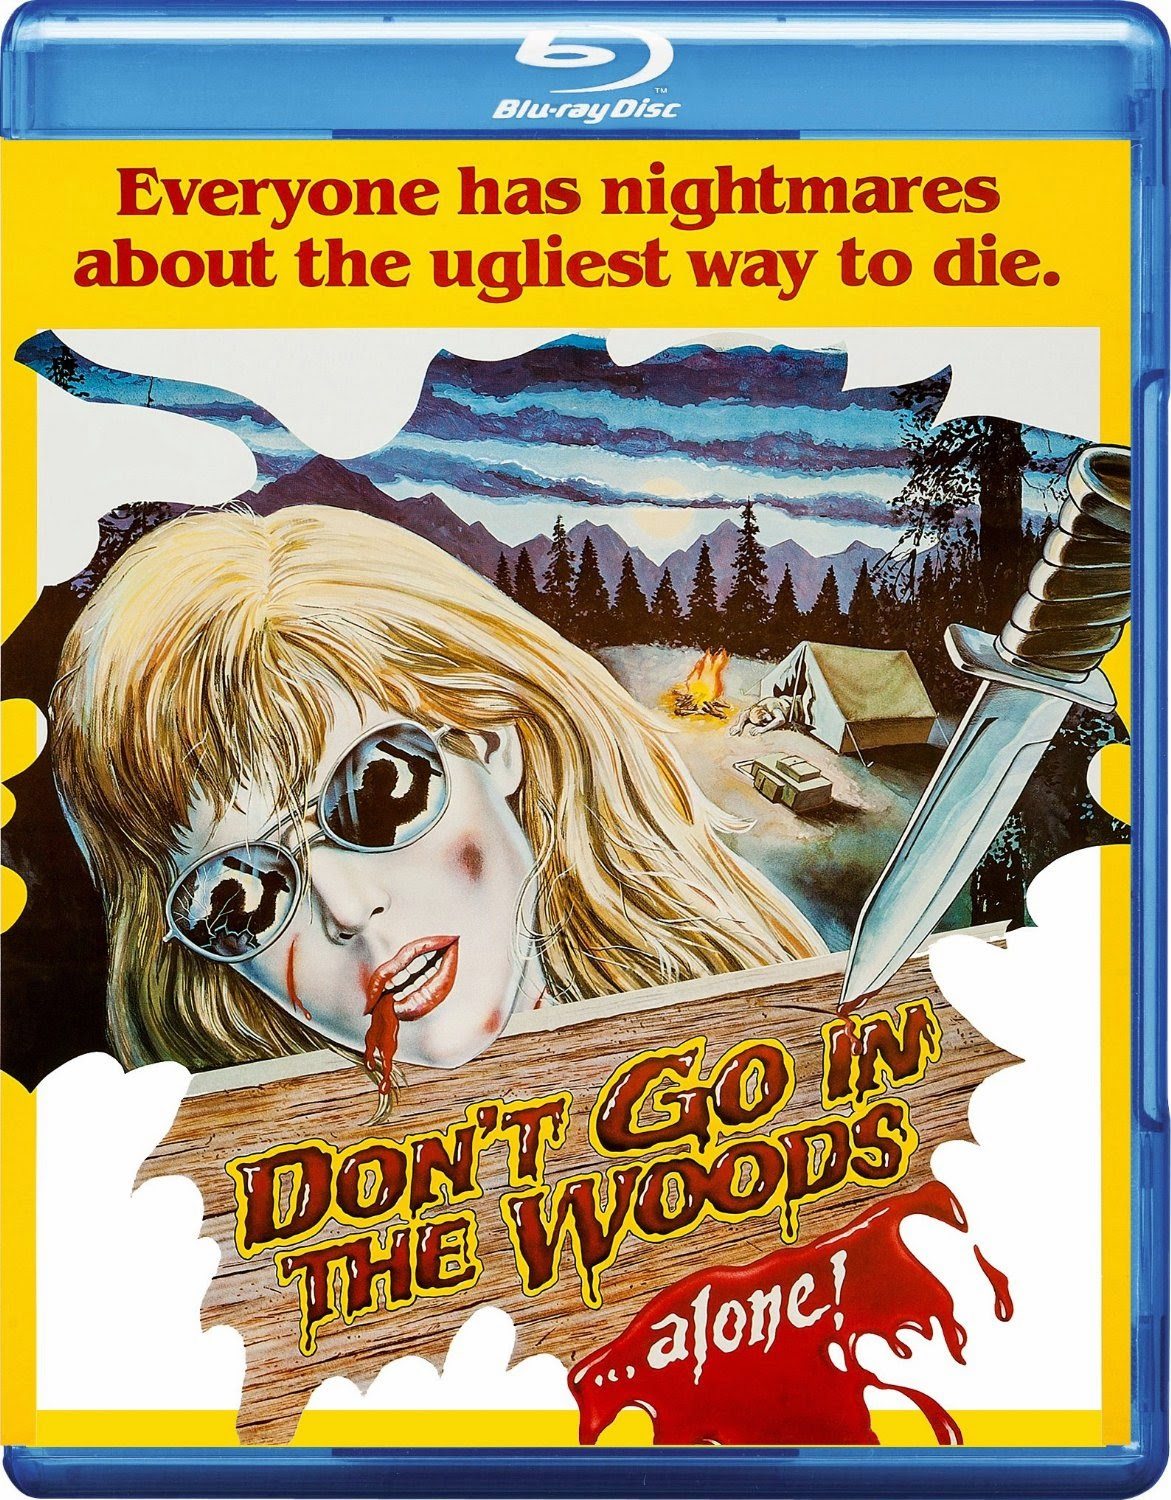 http://horrorsci-fiandmore.blogspot.com/p/dont-go-into-woods-movies-opens-with.html